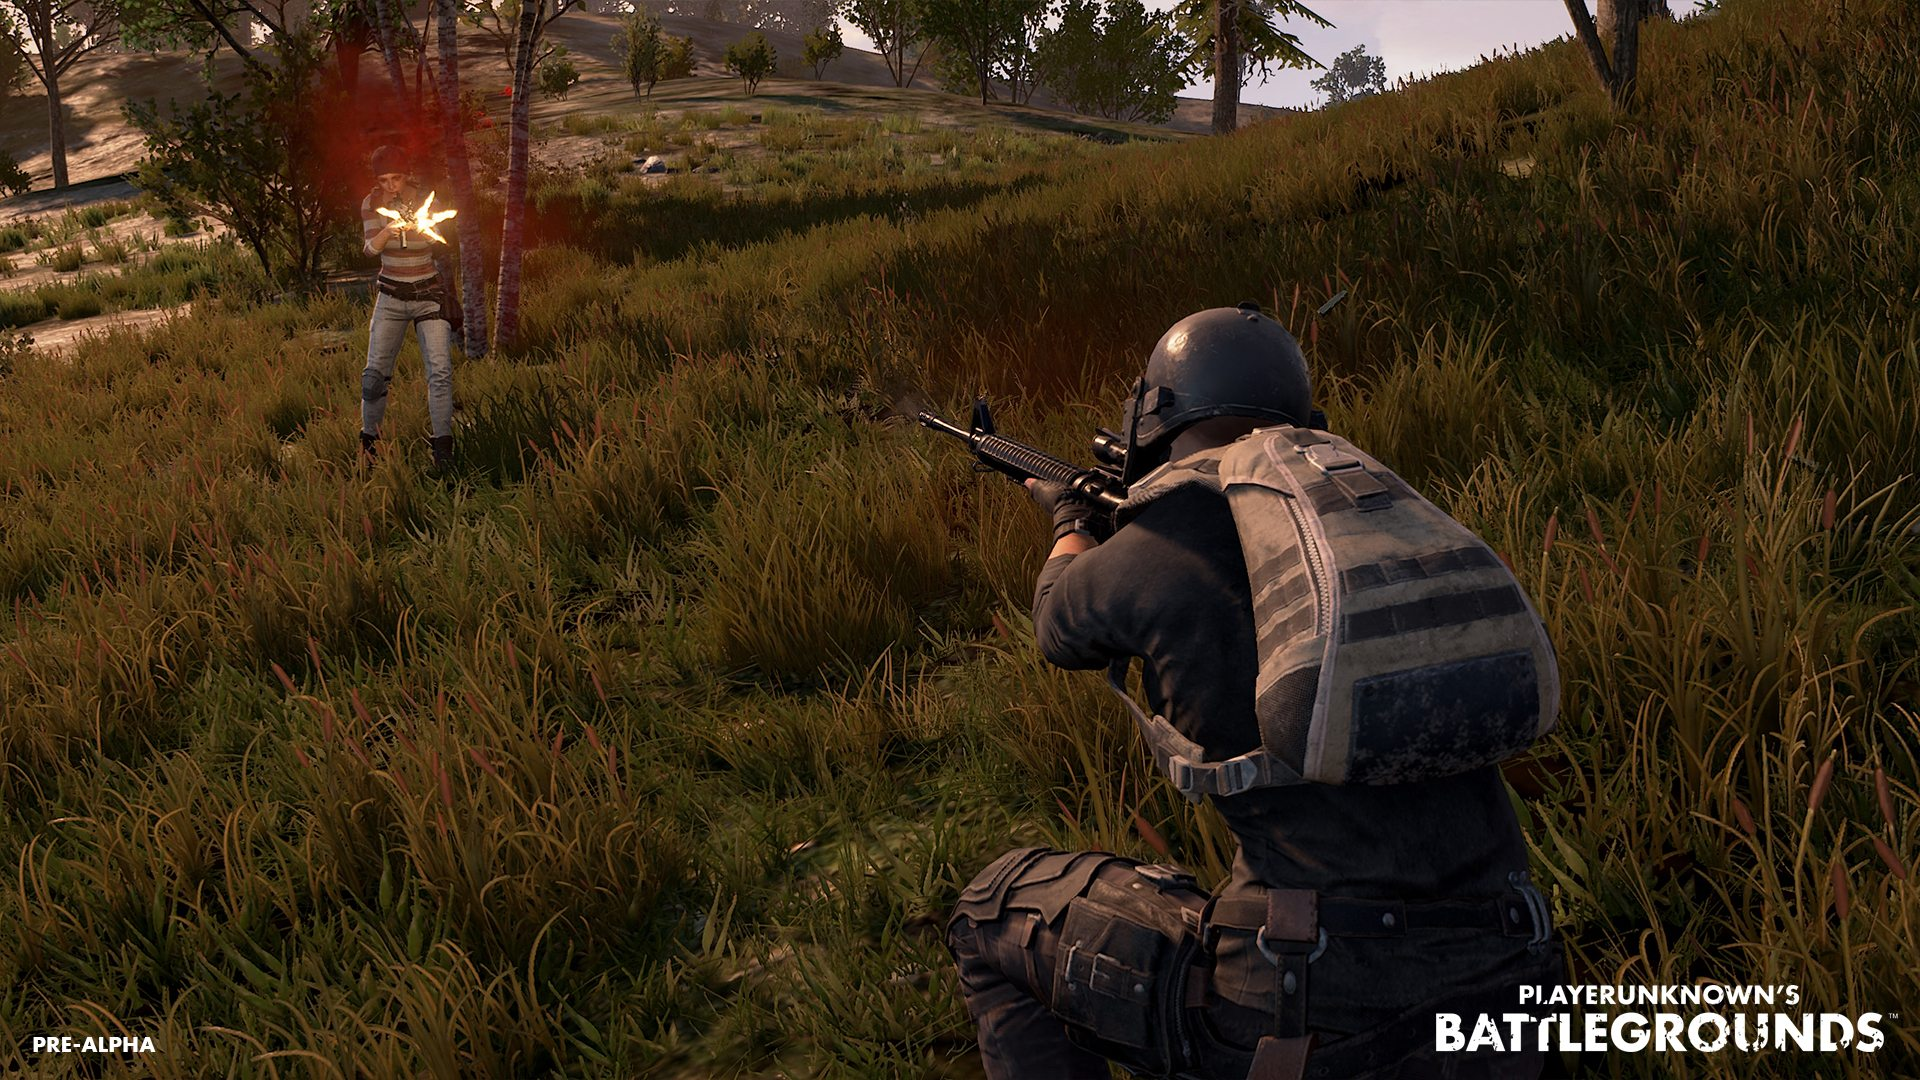 Bluehole Reduces Frequent Updates For 'PlayerUnknown's Battlegrounds'